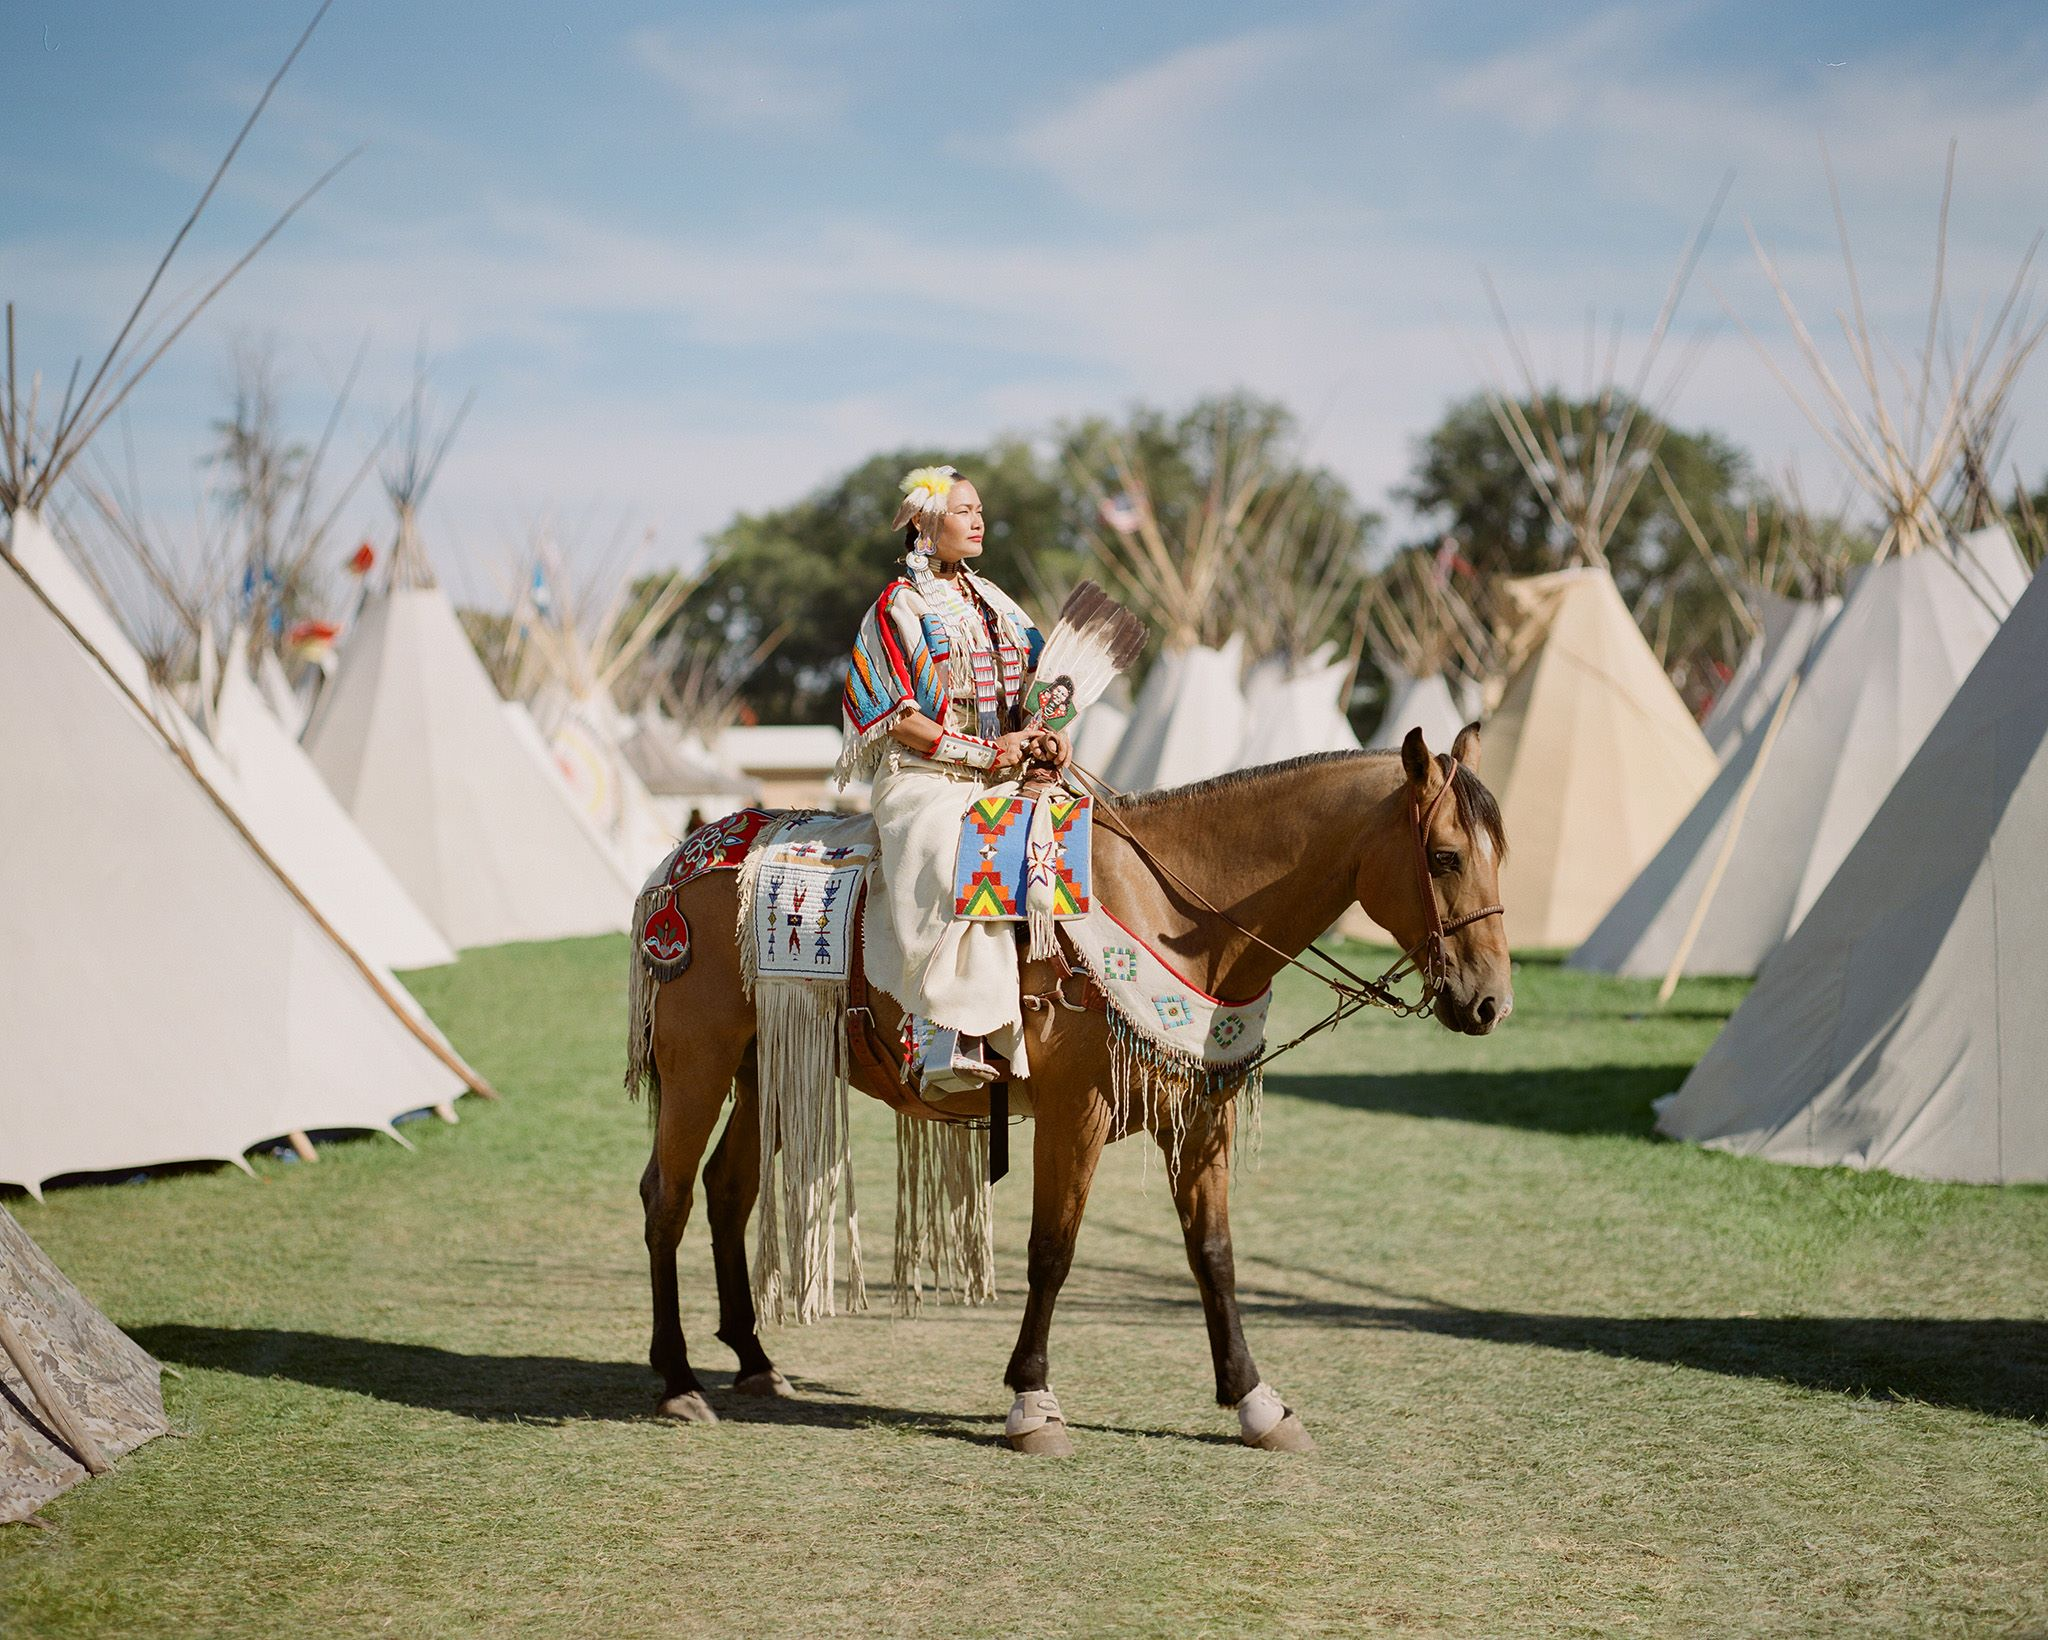 This is my favorite shot of the year. I ran into my friend here on her horse surrounded by a crowd. I had 2 shots left on my roll of film. I asked if I could take her photo and for one second, the crowd happened to be out of the frame. A magical moment for me. - Whitney Minthorn